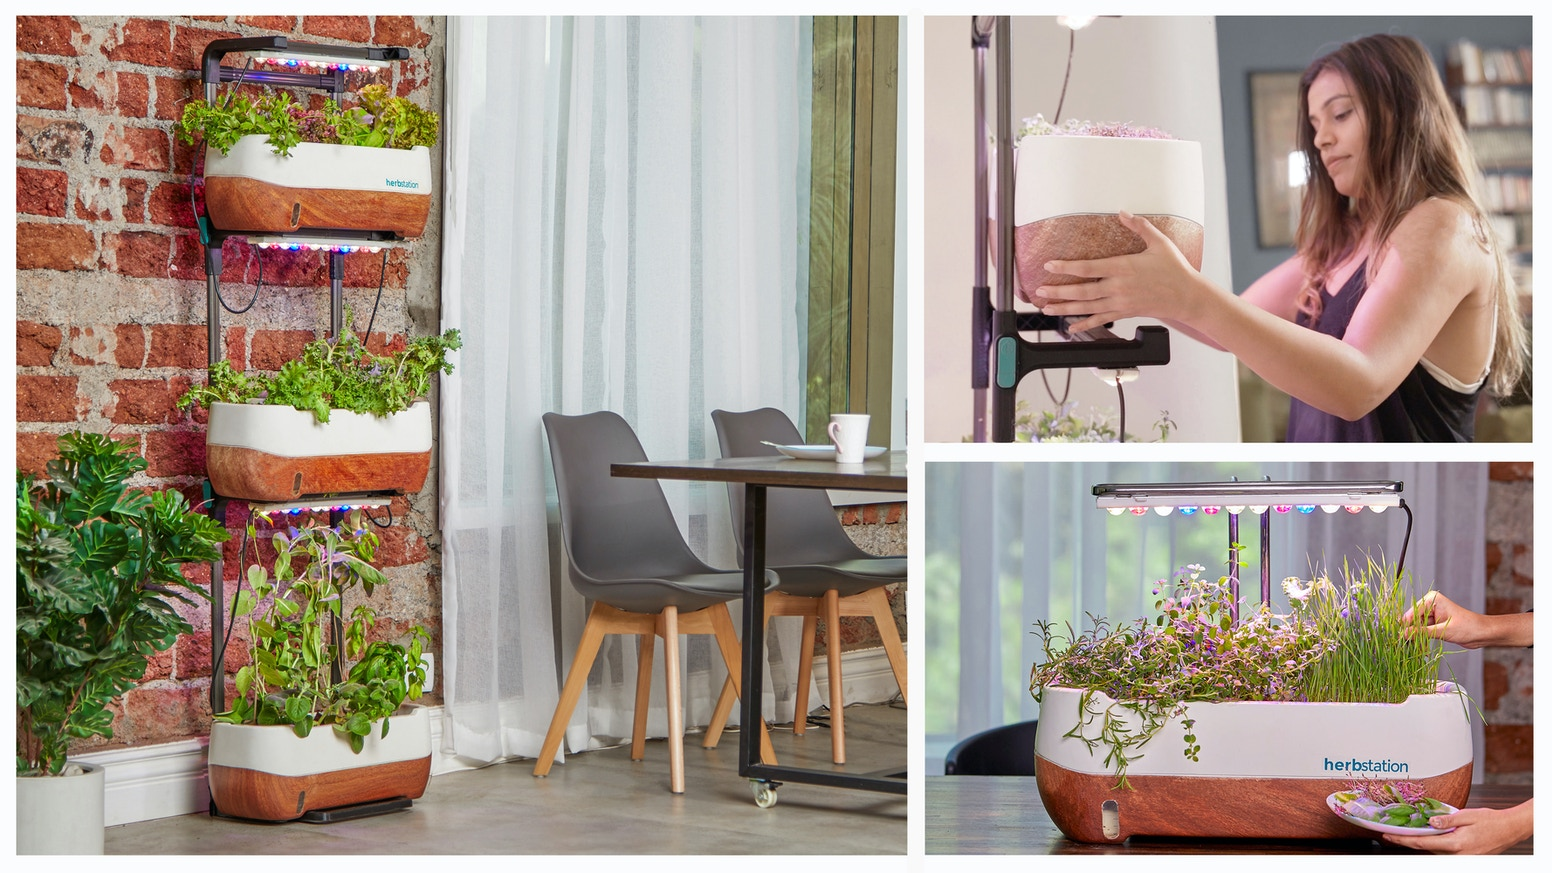 A compact & beautiful home farm that elevates your decor & grows fresh produce year-round, using garden soil or soil-less hydroponics.